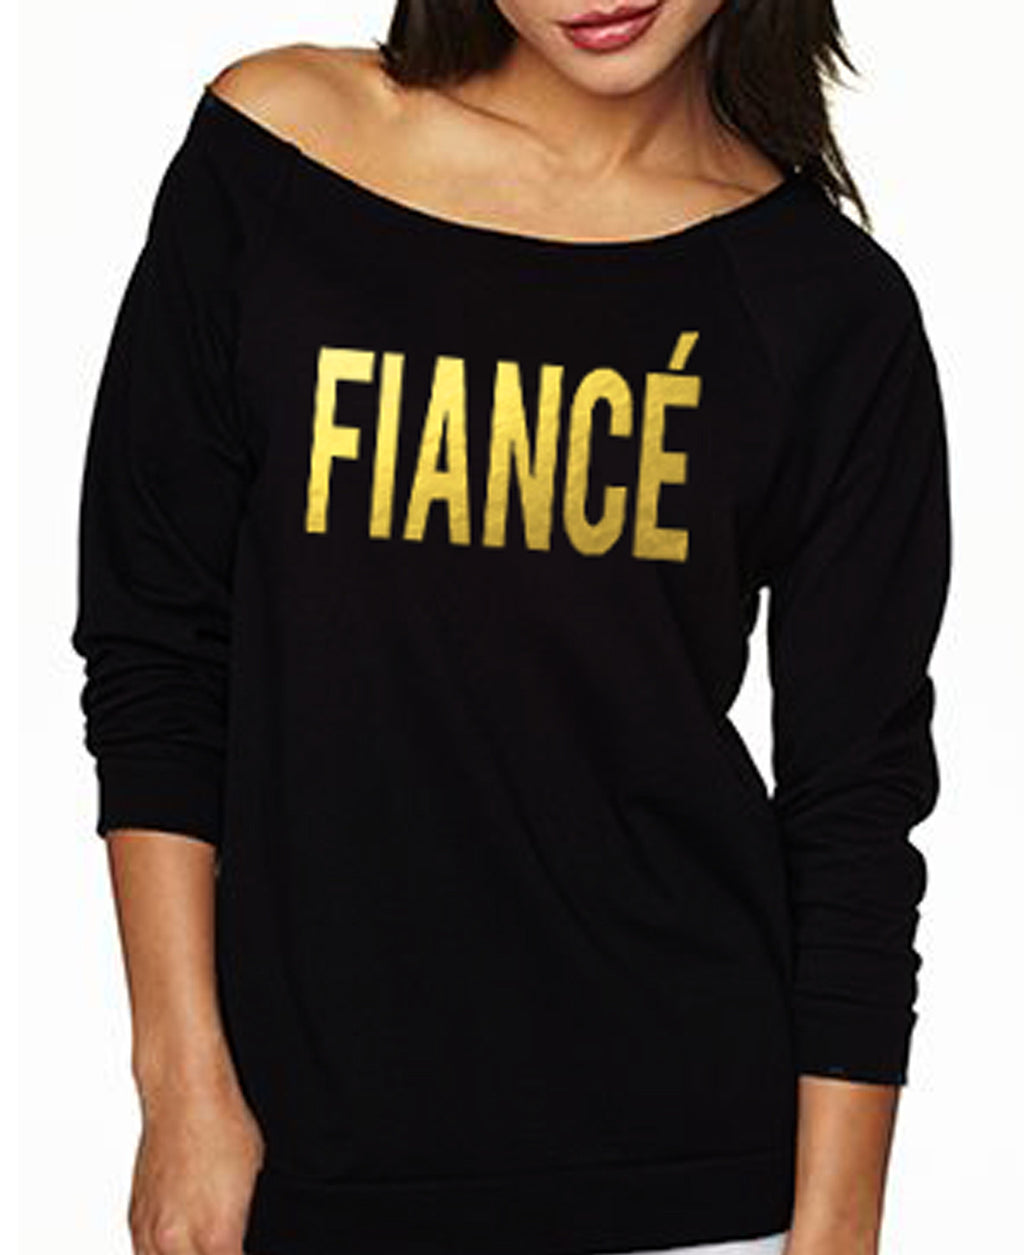 FIANCE Off-Shoulder Long Sleeve Shirt - Gold Foil Print